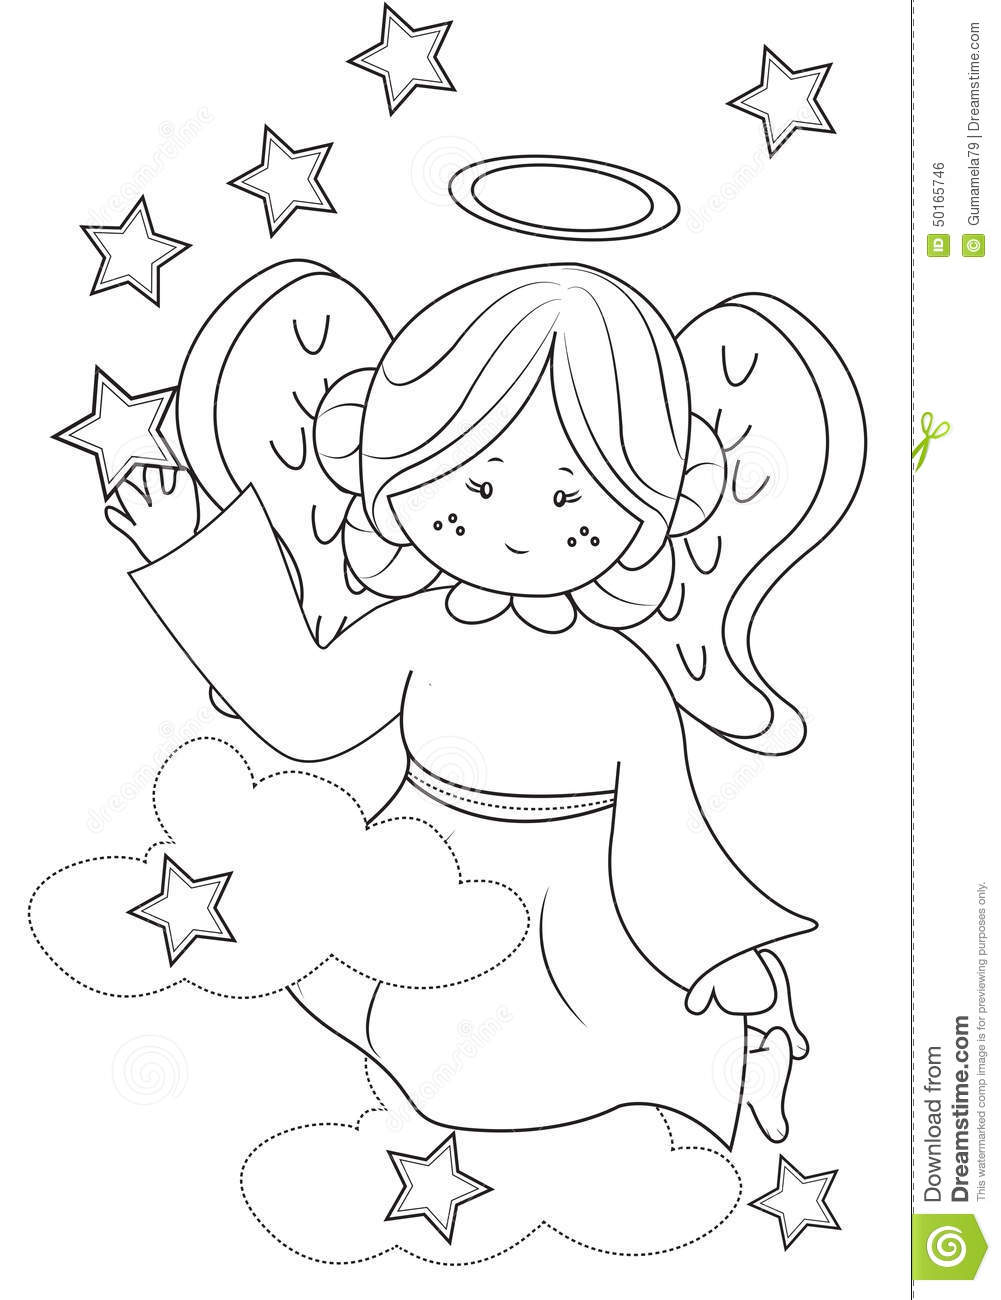 angel coloring page stock illustration image 50165746